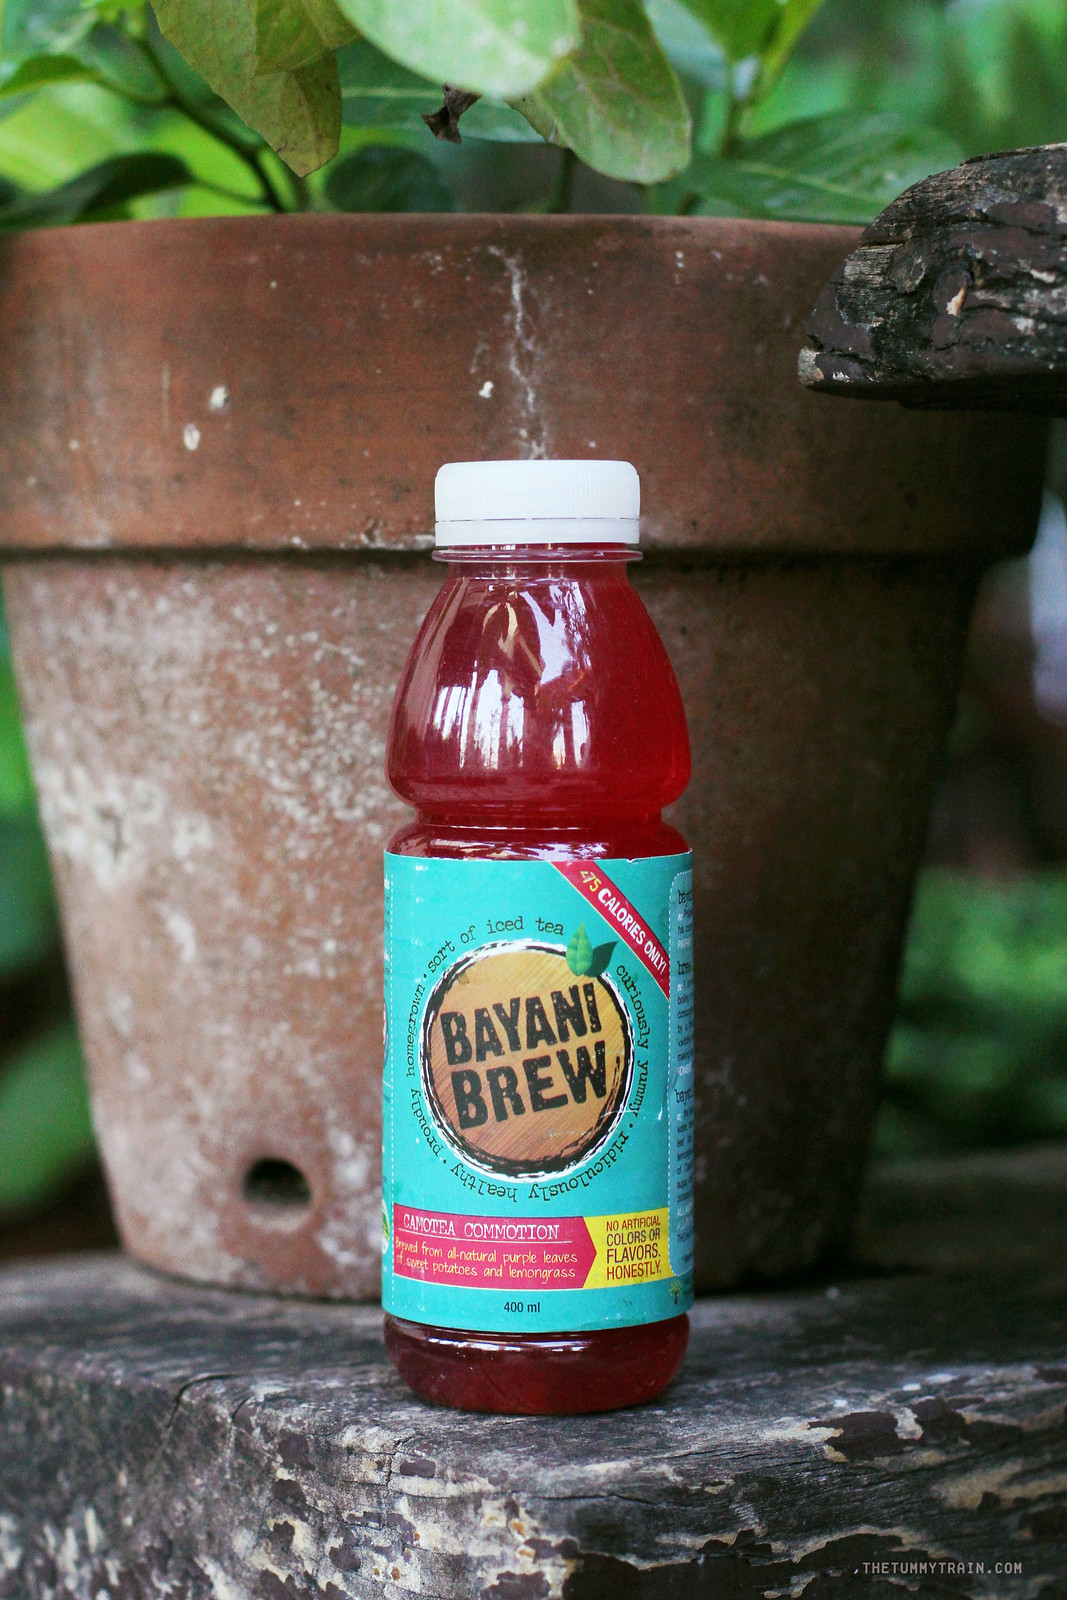 27653856881 6816af5e26 h - Bayani Brew wants you to be an #EverydayBayani